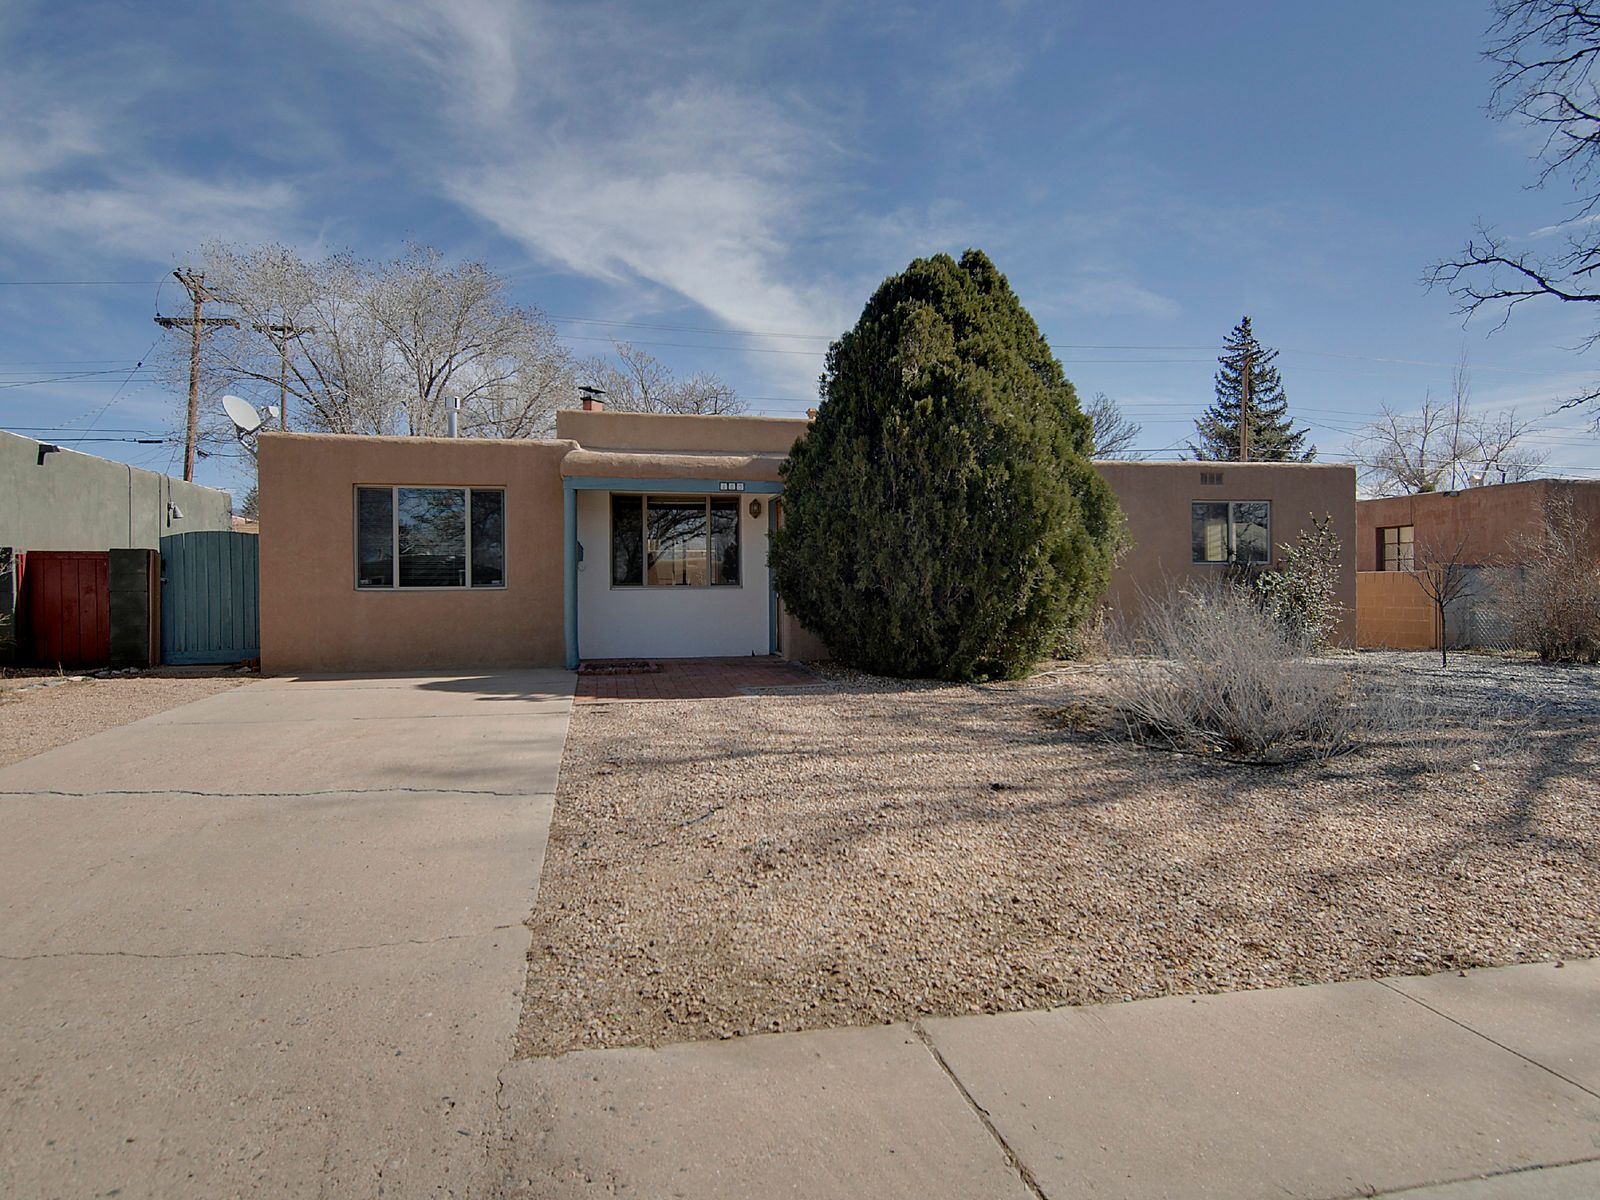 123 Spruce Street, Santa Fe NM Single Family Home - Santa Fe Real Estate